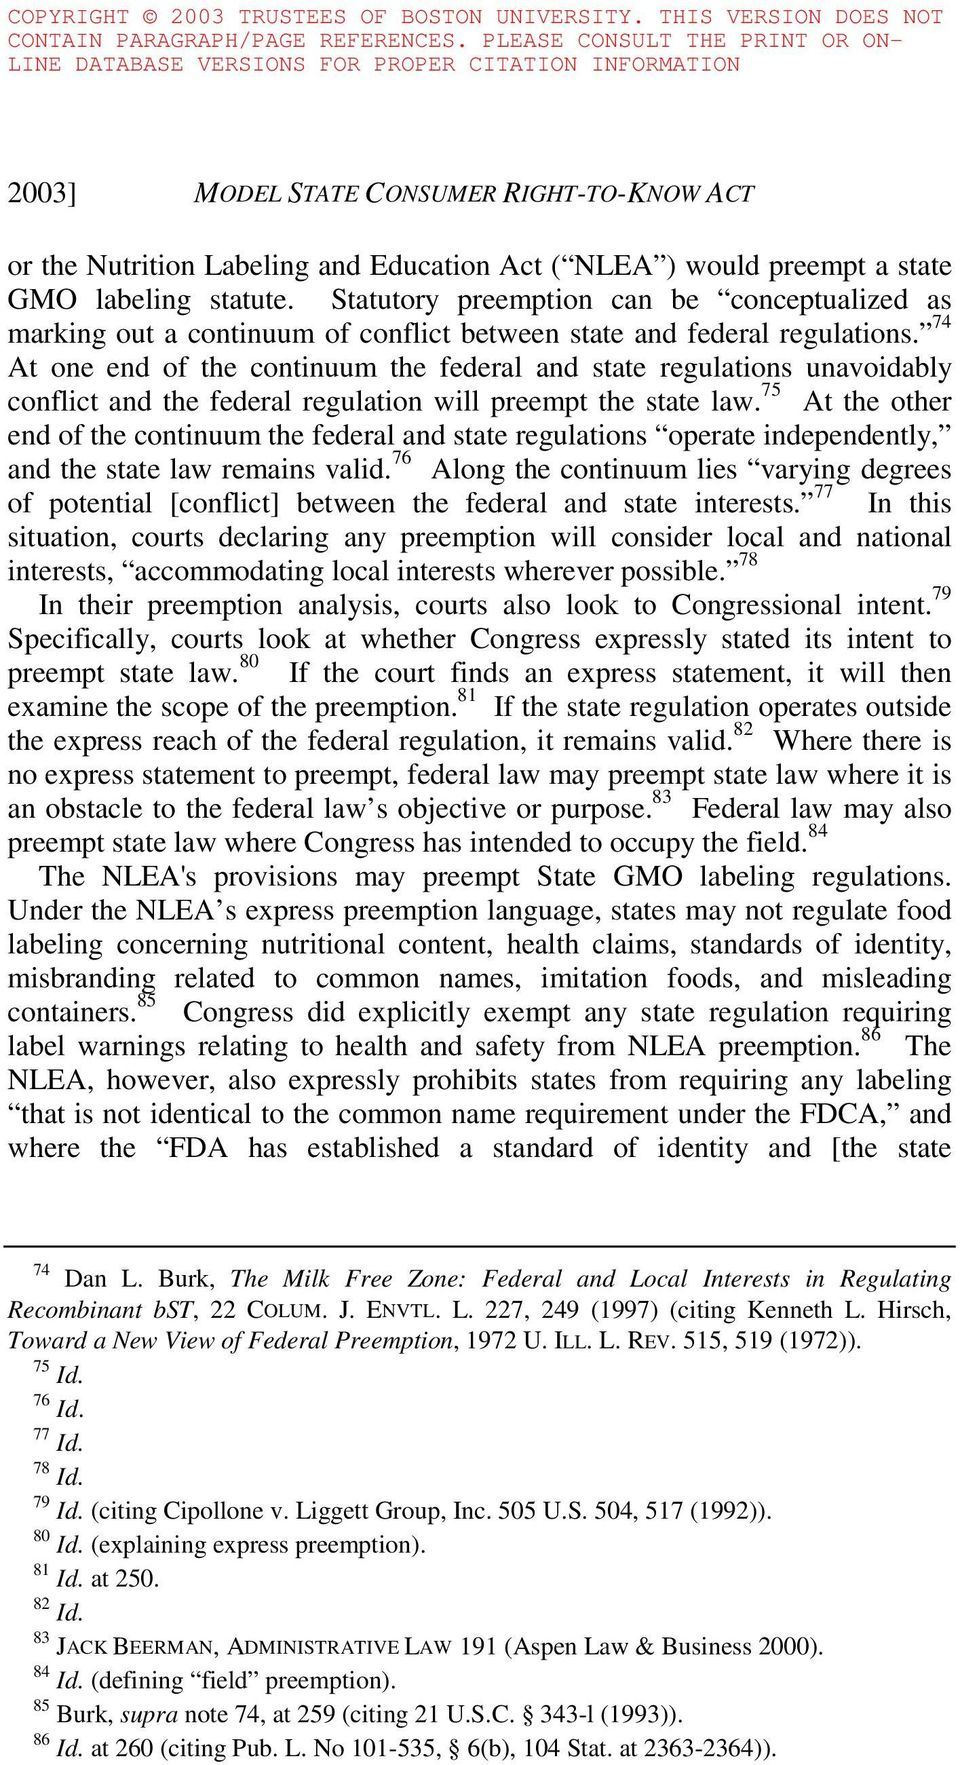 74 At one end of the continuum the federal and state regulations unavoidably conflict and the federal regulation will preempt the state law.